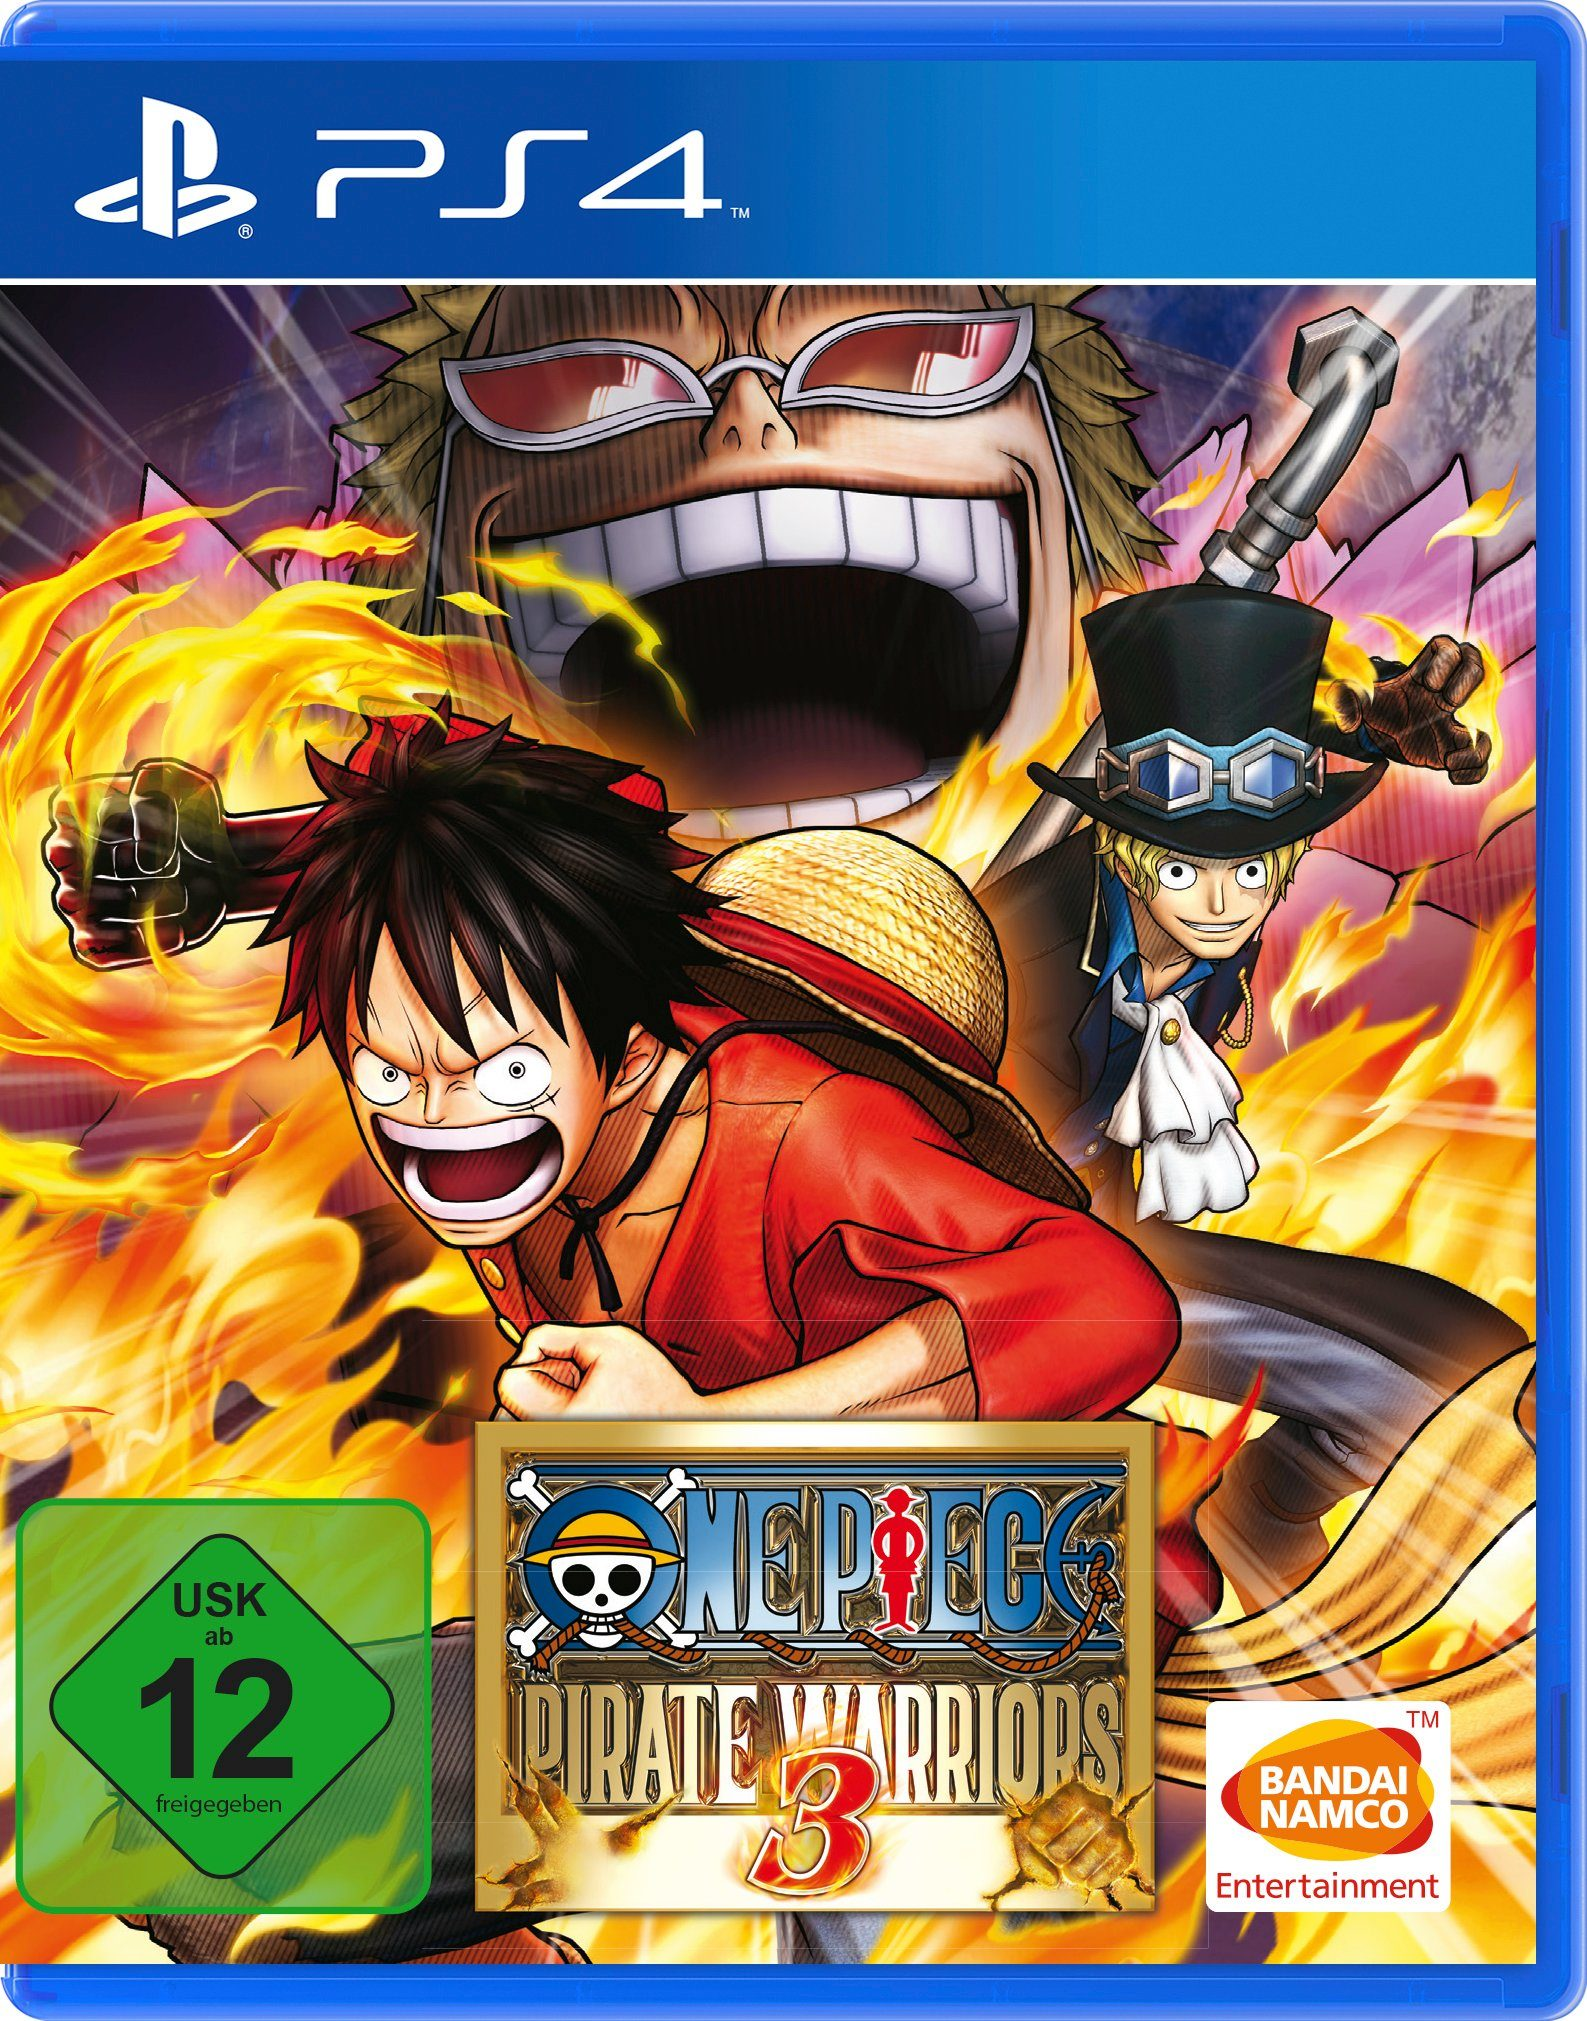 BANDAI NAMCO Software Pyramide - Playstation 4 Spiel »One Piece Pirate Warriors 3«